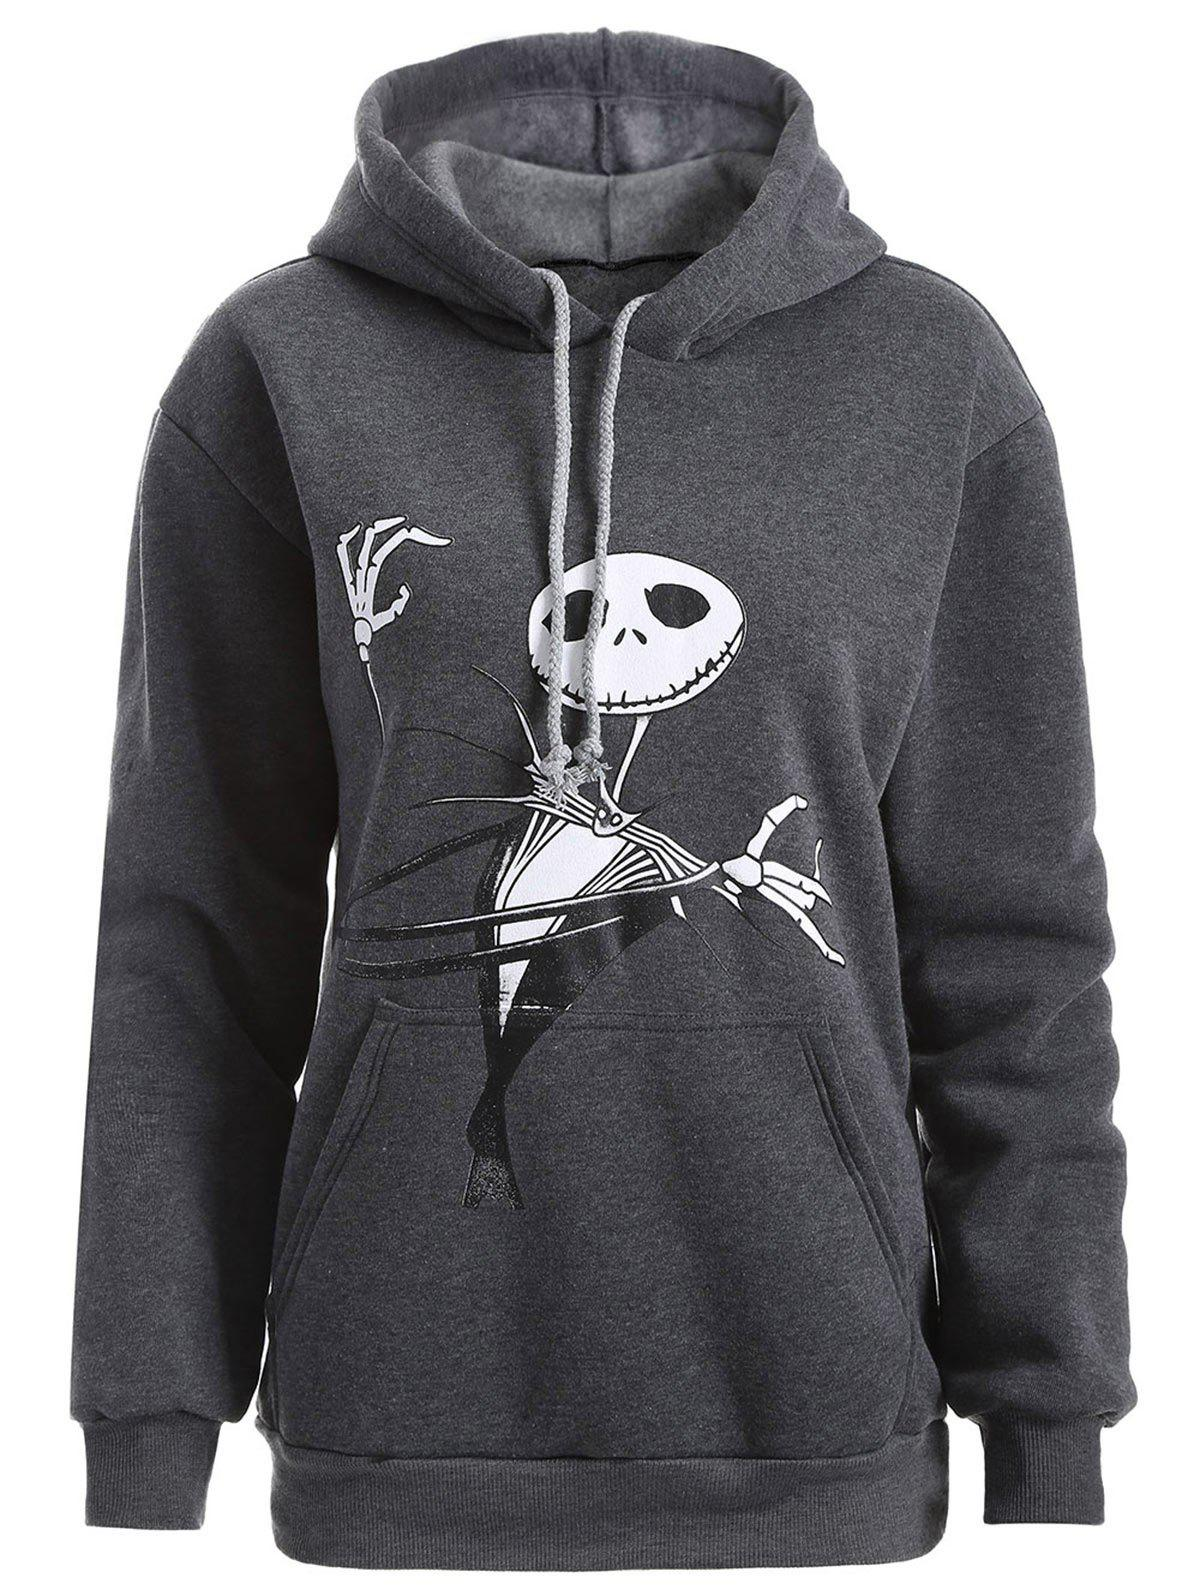 Plus Size Halloween Ghost Print Graphic Hoodie - DEEP GRAY XL